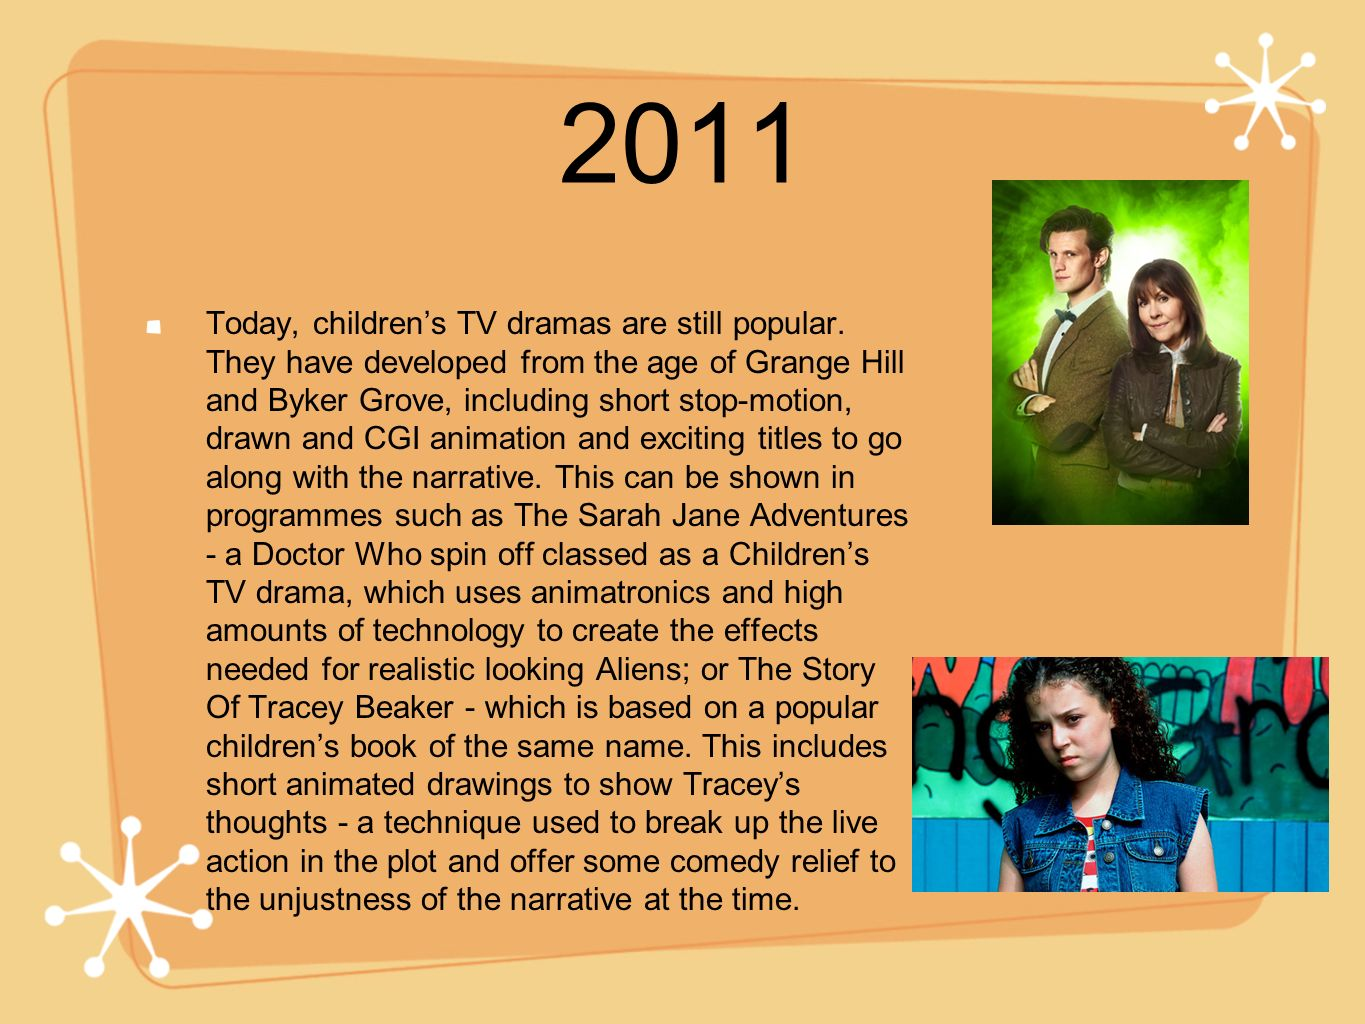 2011 Today, childrens TV dramas are still popular. They have developed from the age of Grange Hill and Byker Grove, including short stop-motion, drawn